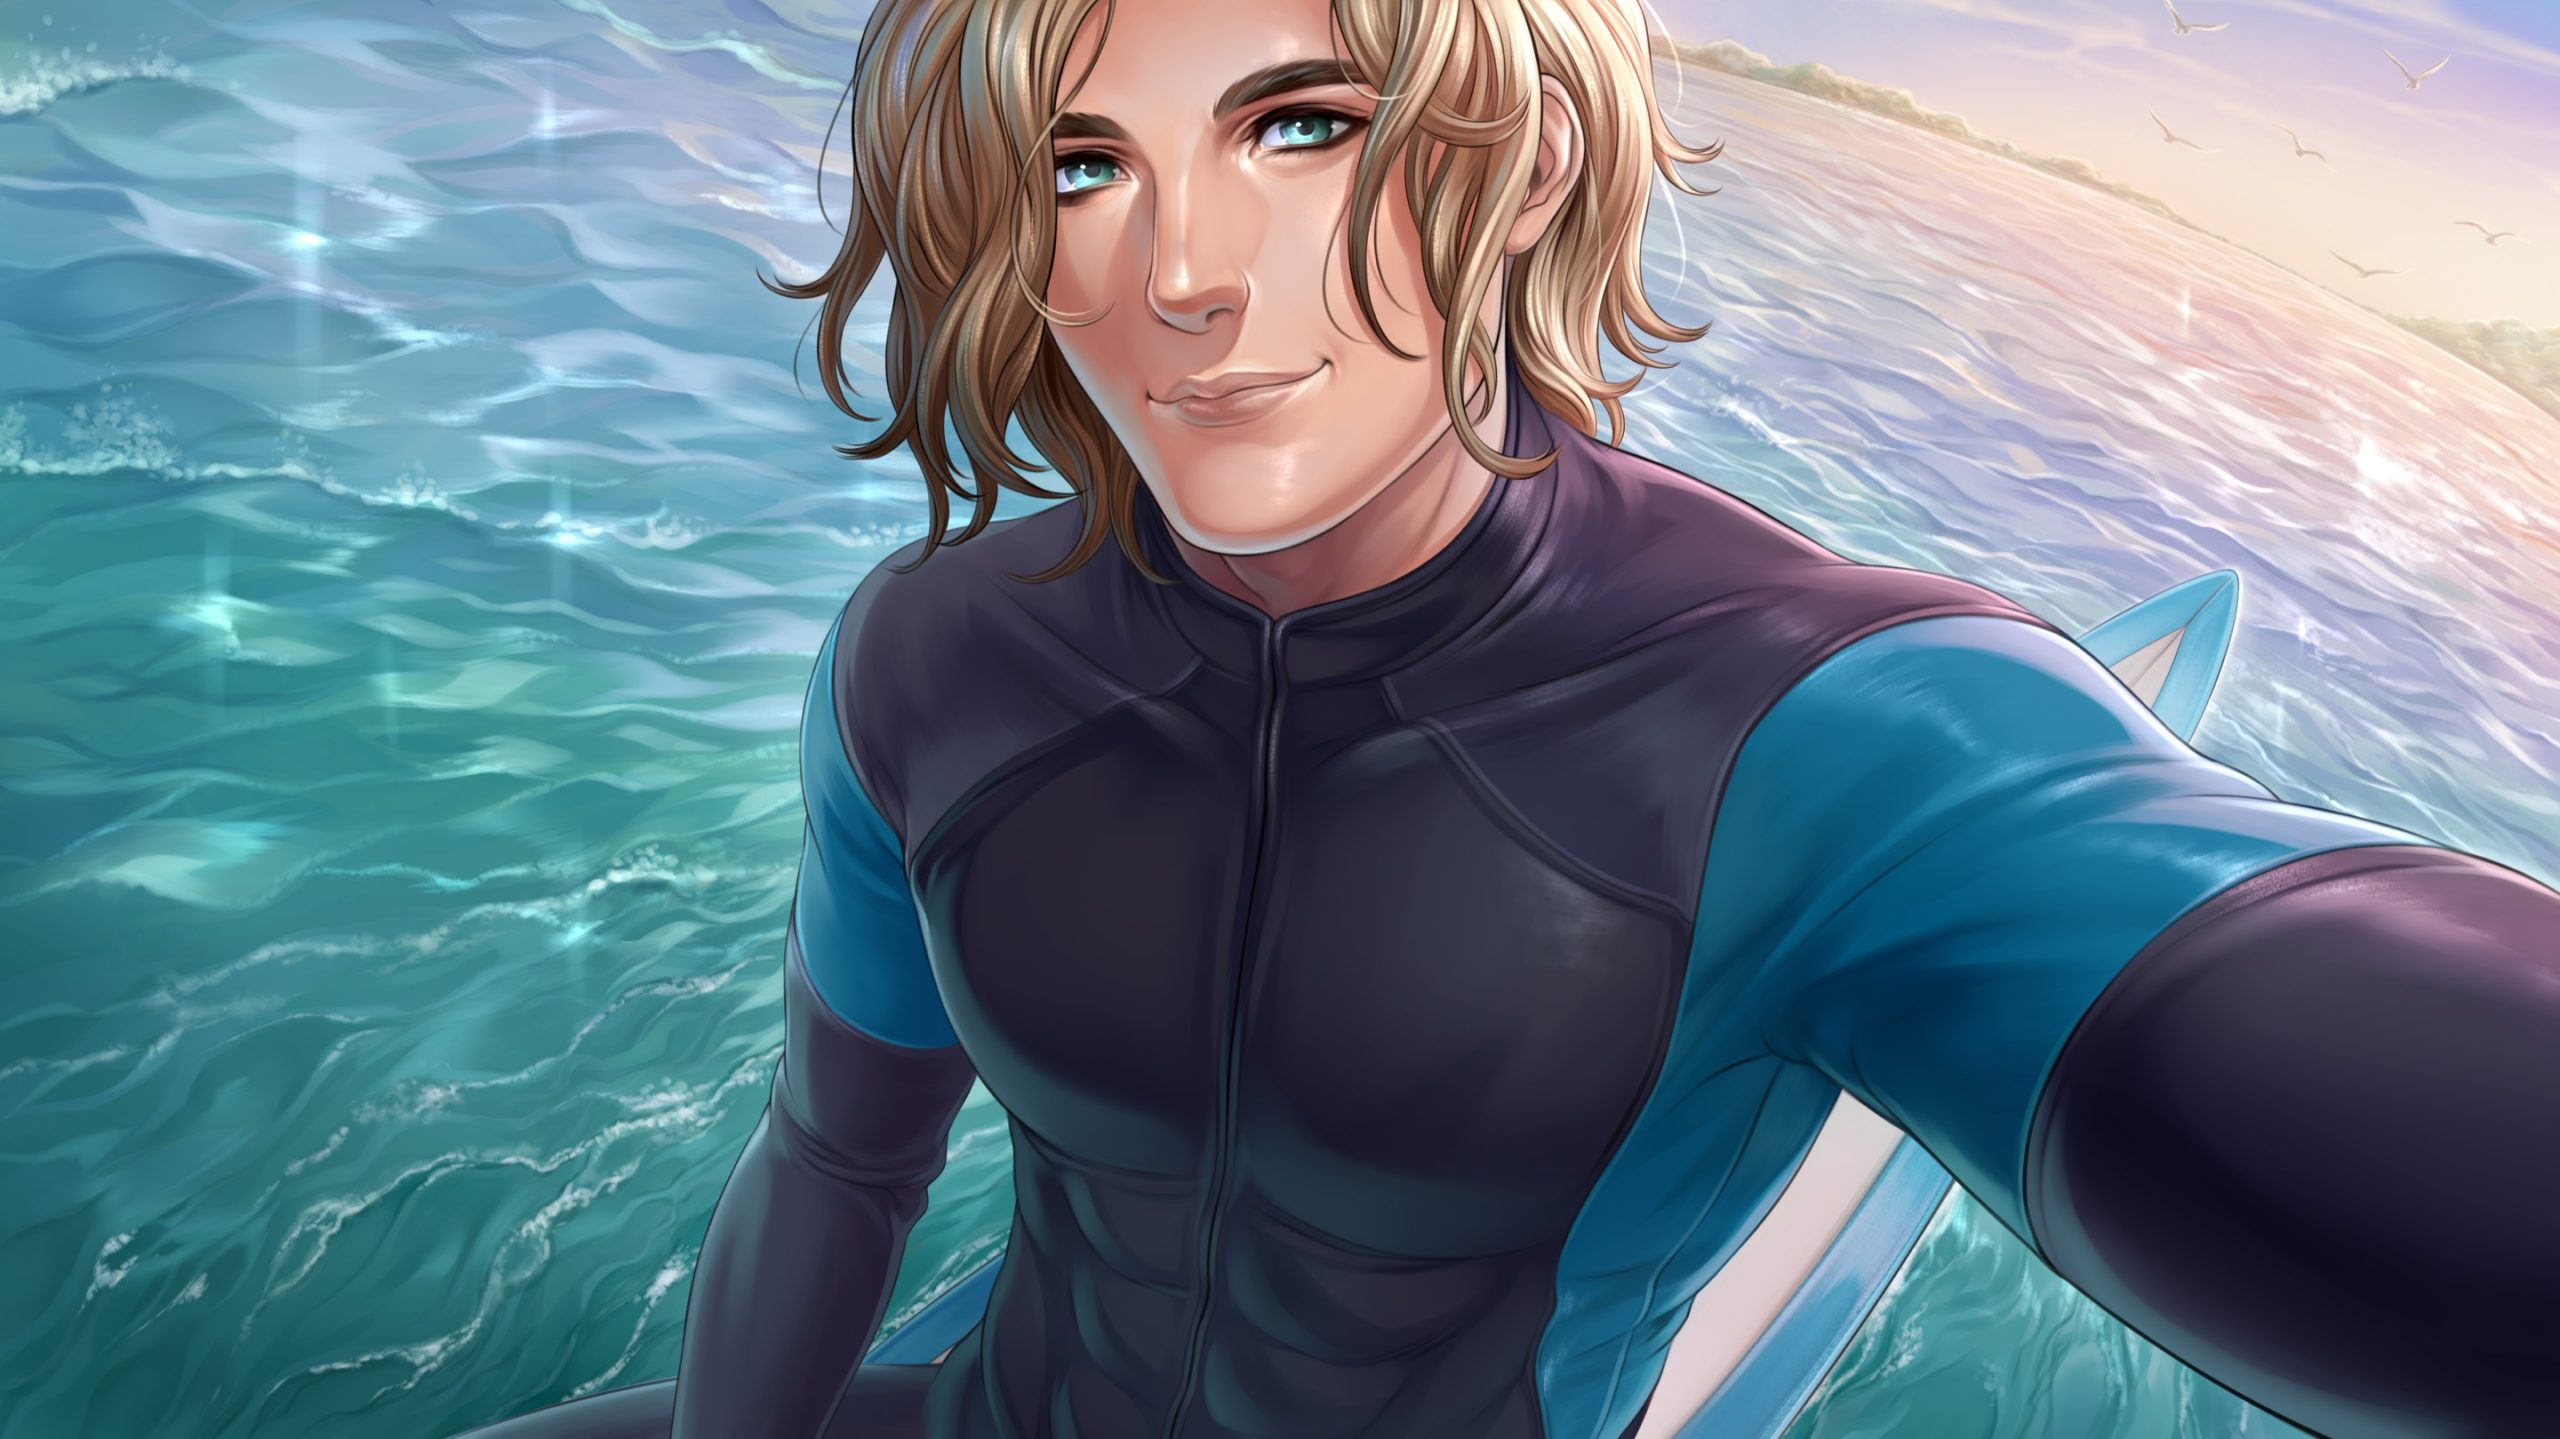 Adam personnage de Is It Love fait du surf